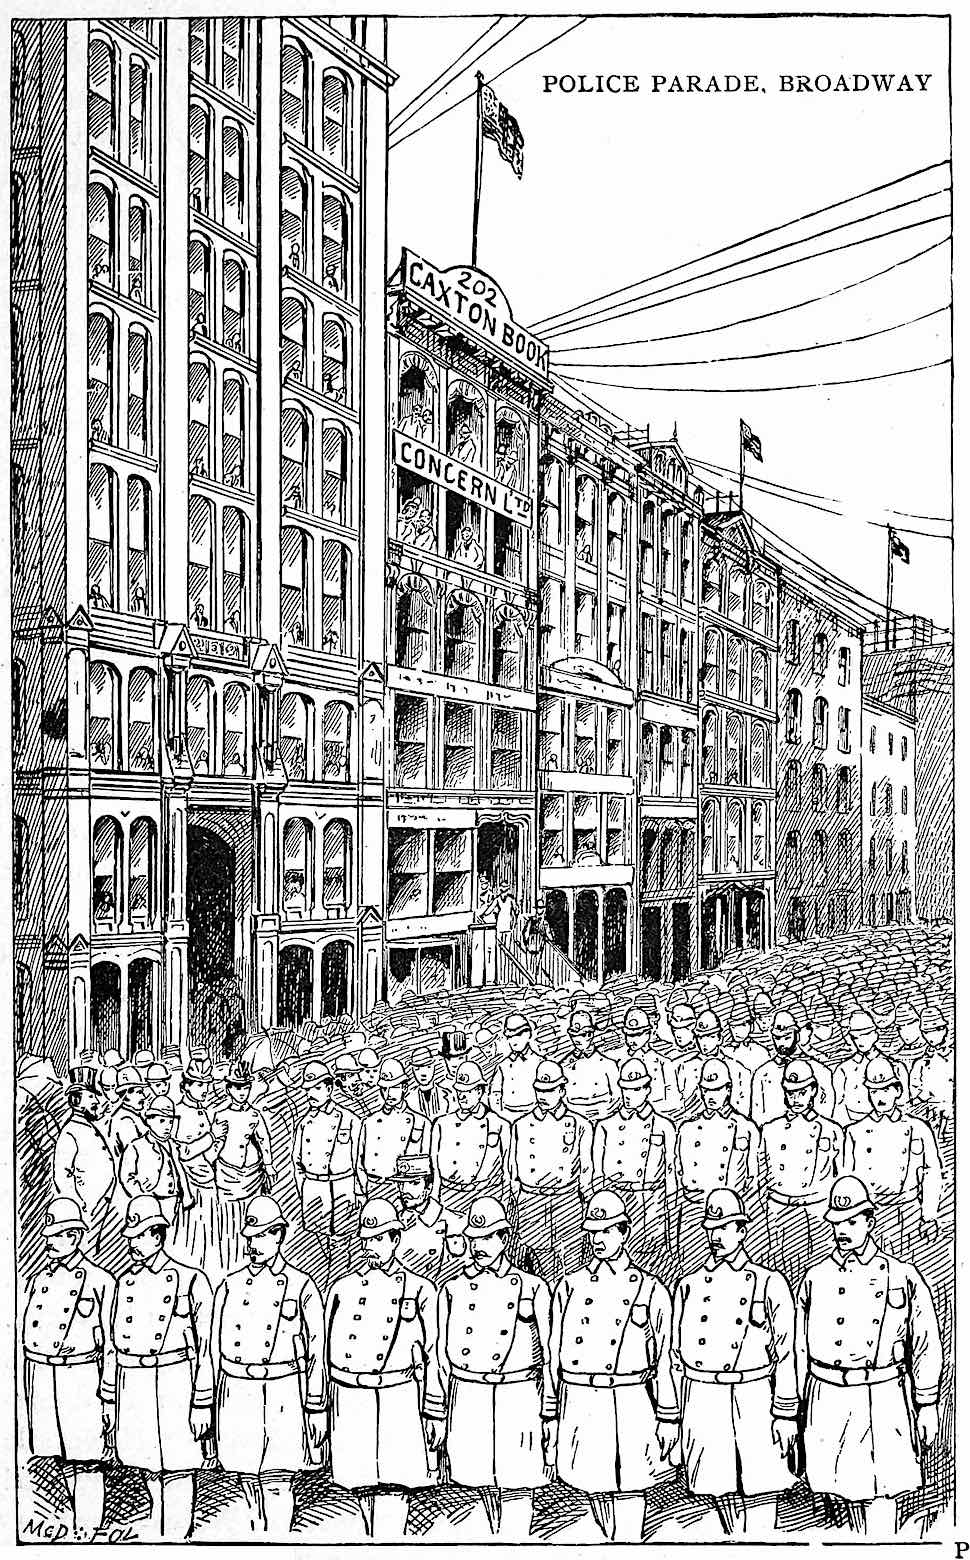 1888 USA illustration of a police parade on Broadway